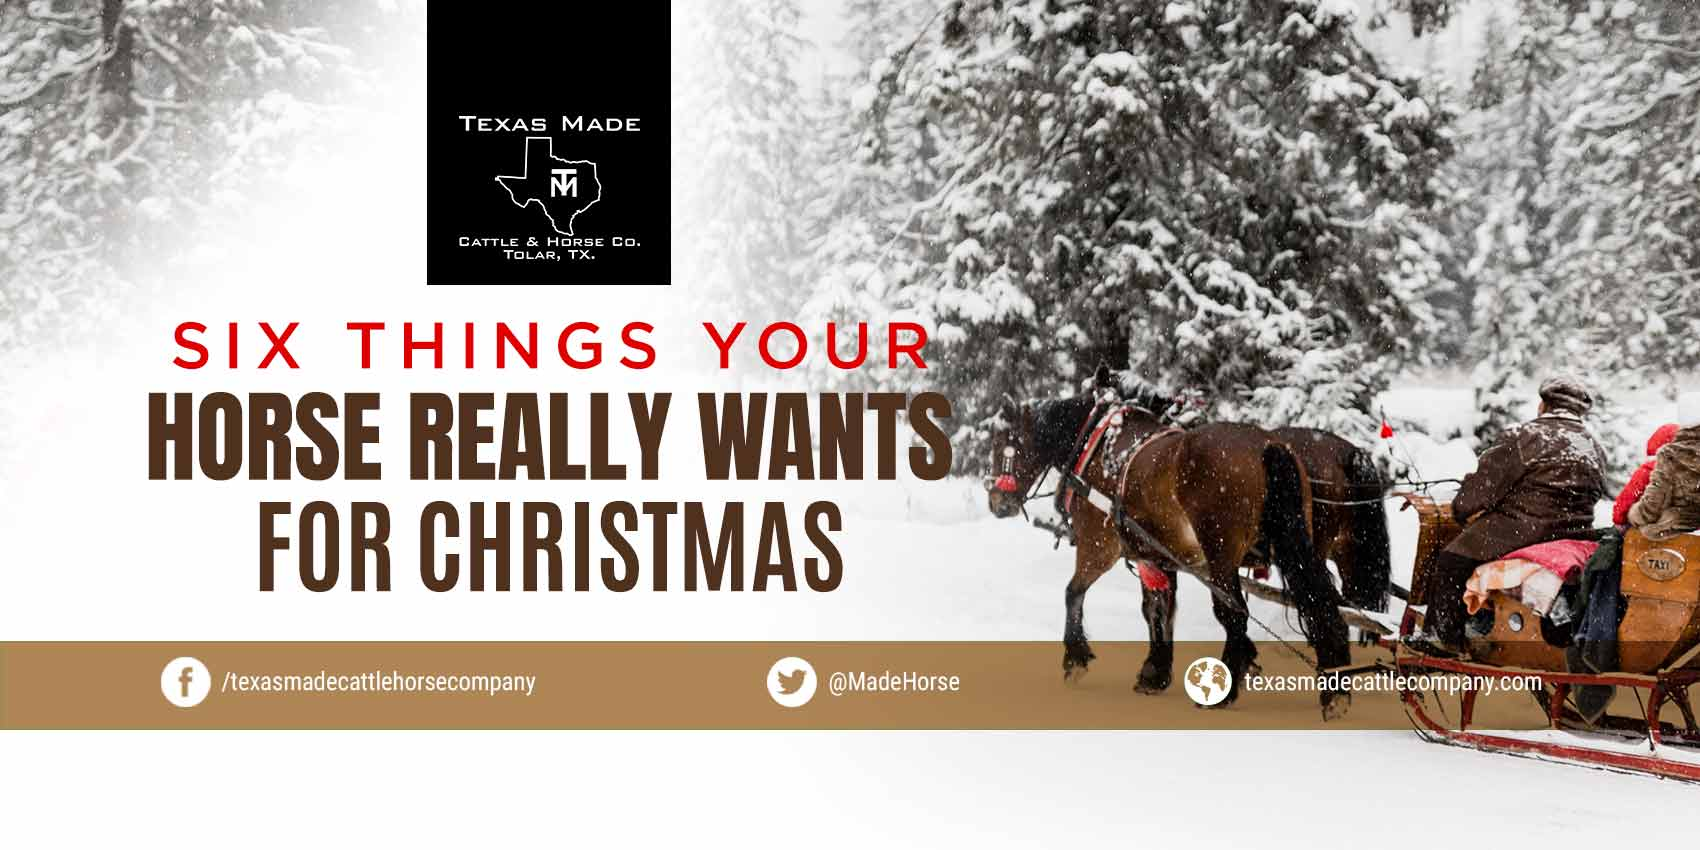 Six Things Your Horse Really Wants for Christmas